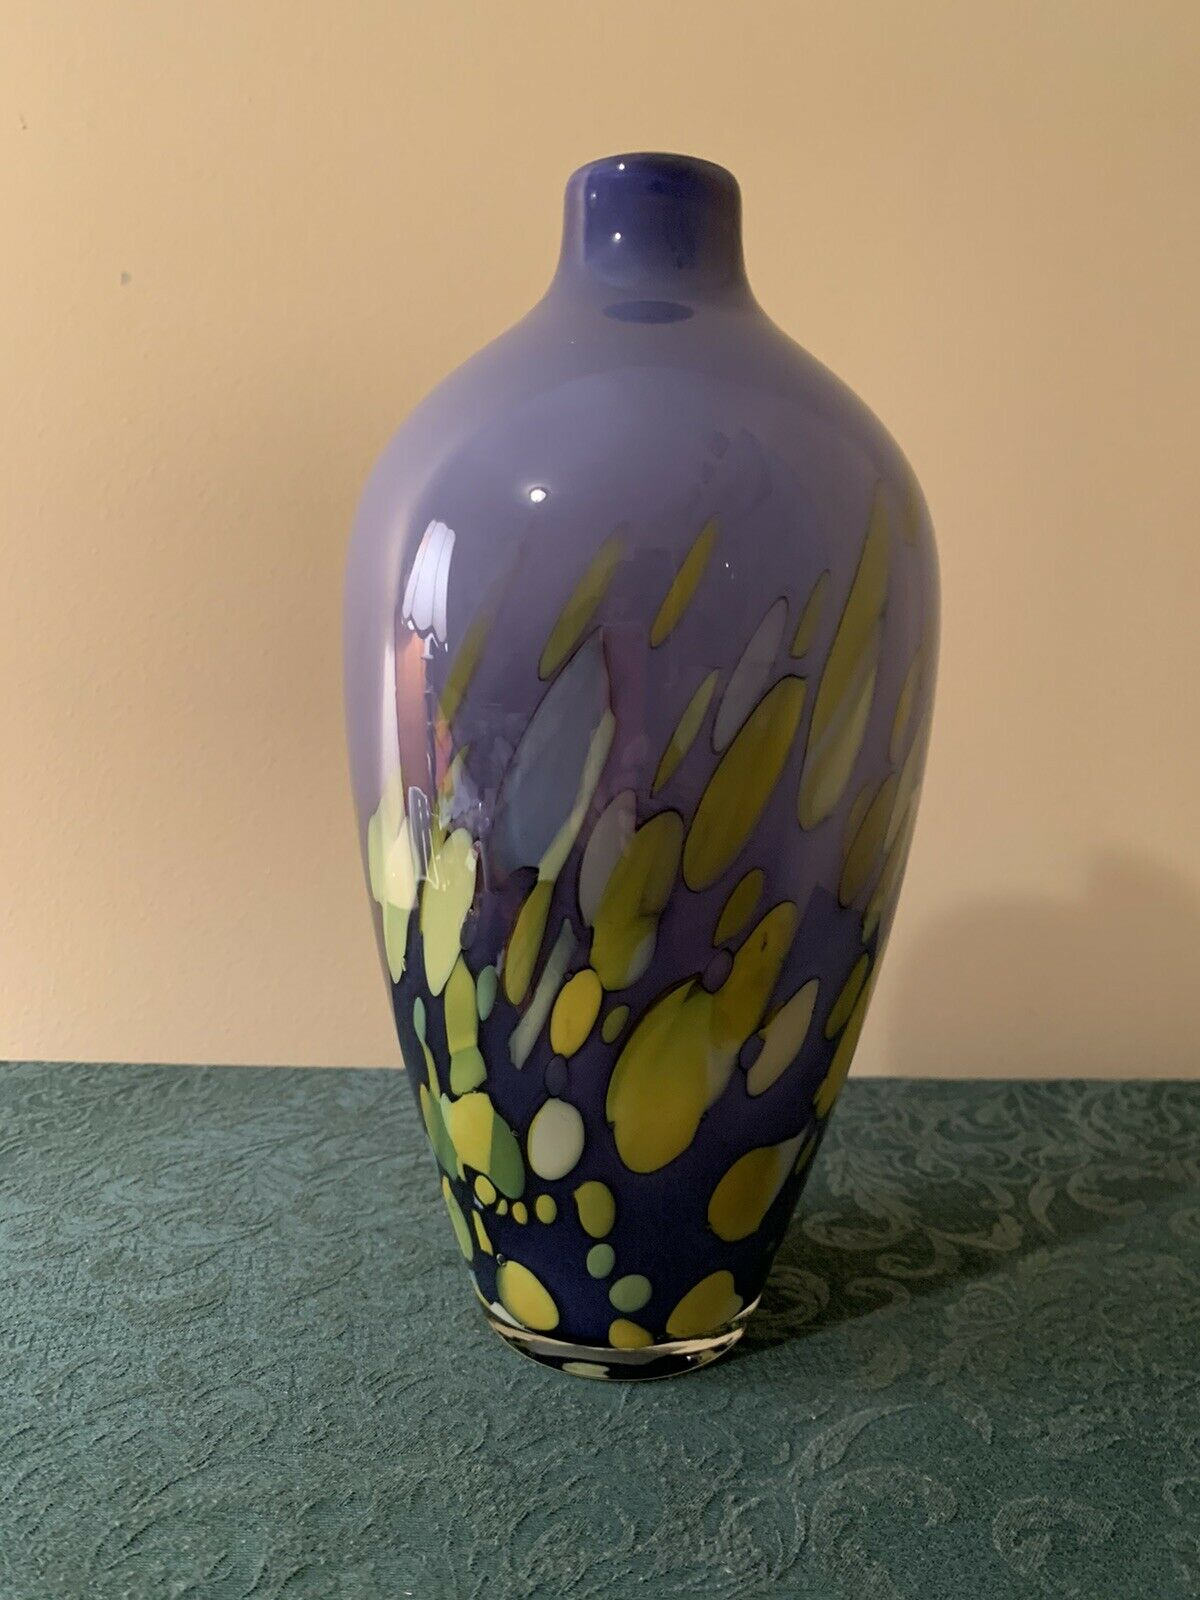 Handmade Home D/écor high quality purple Glass Vase approx 9inch